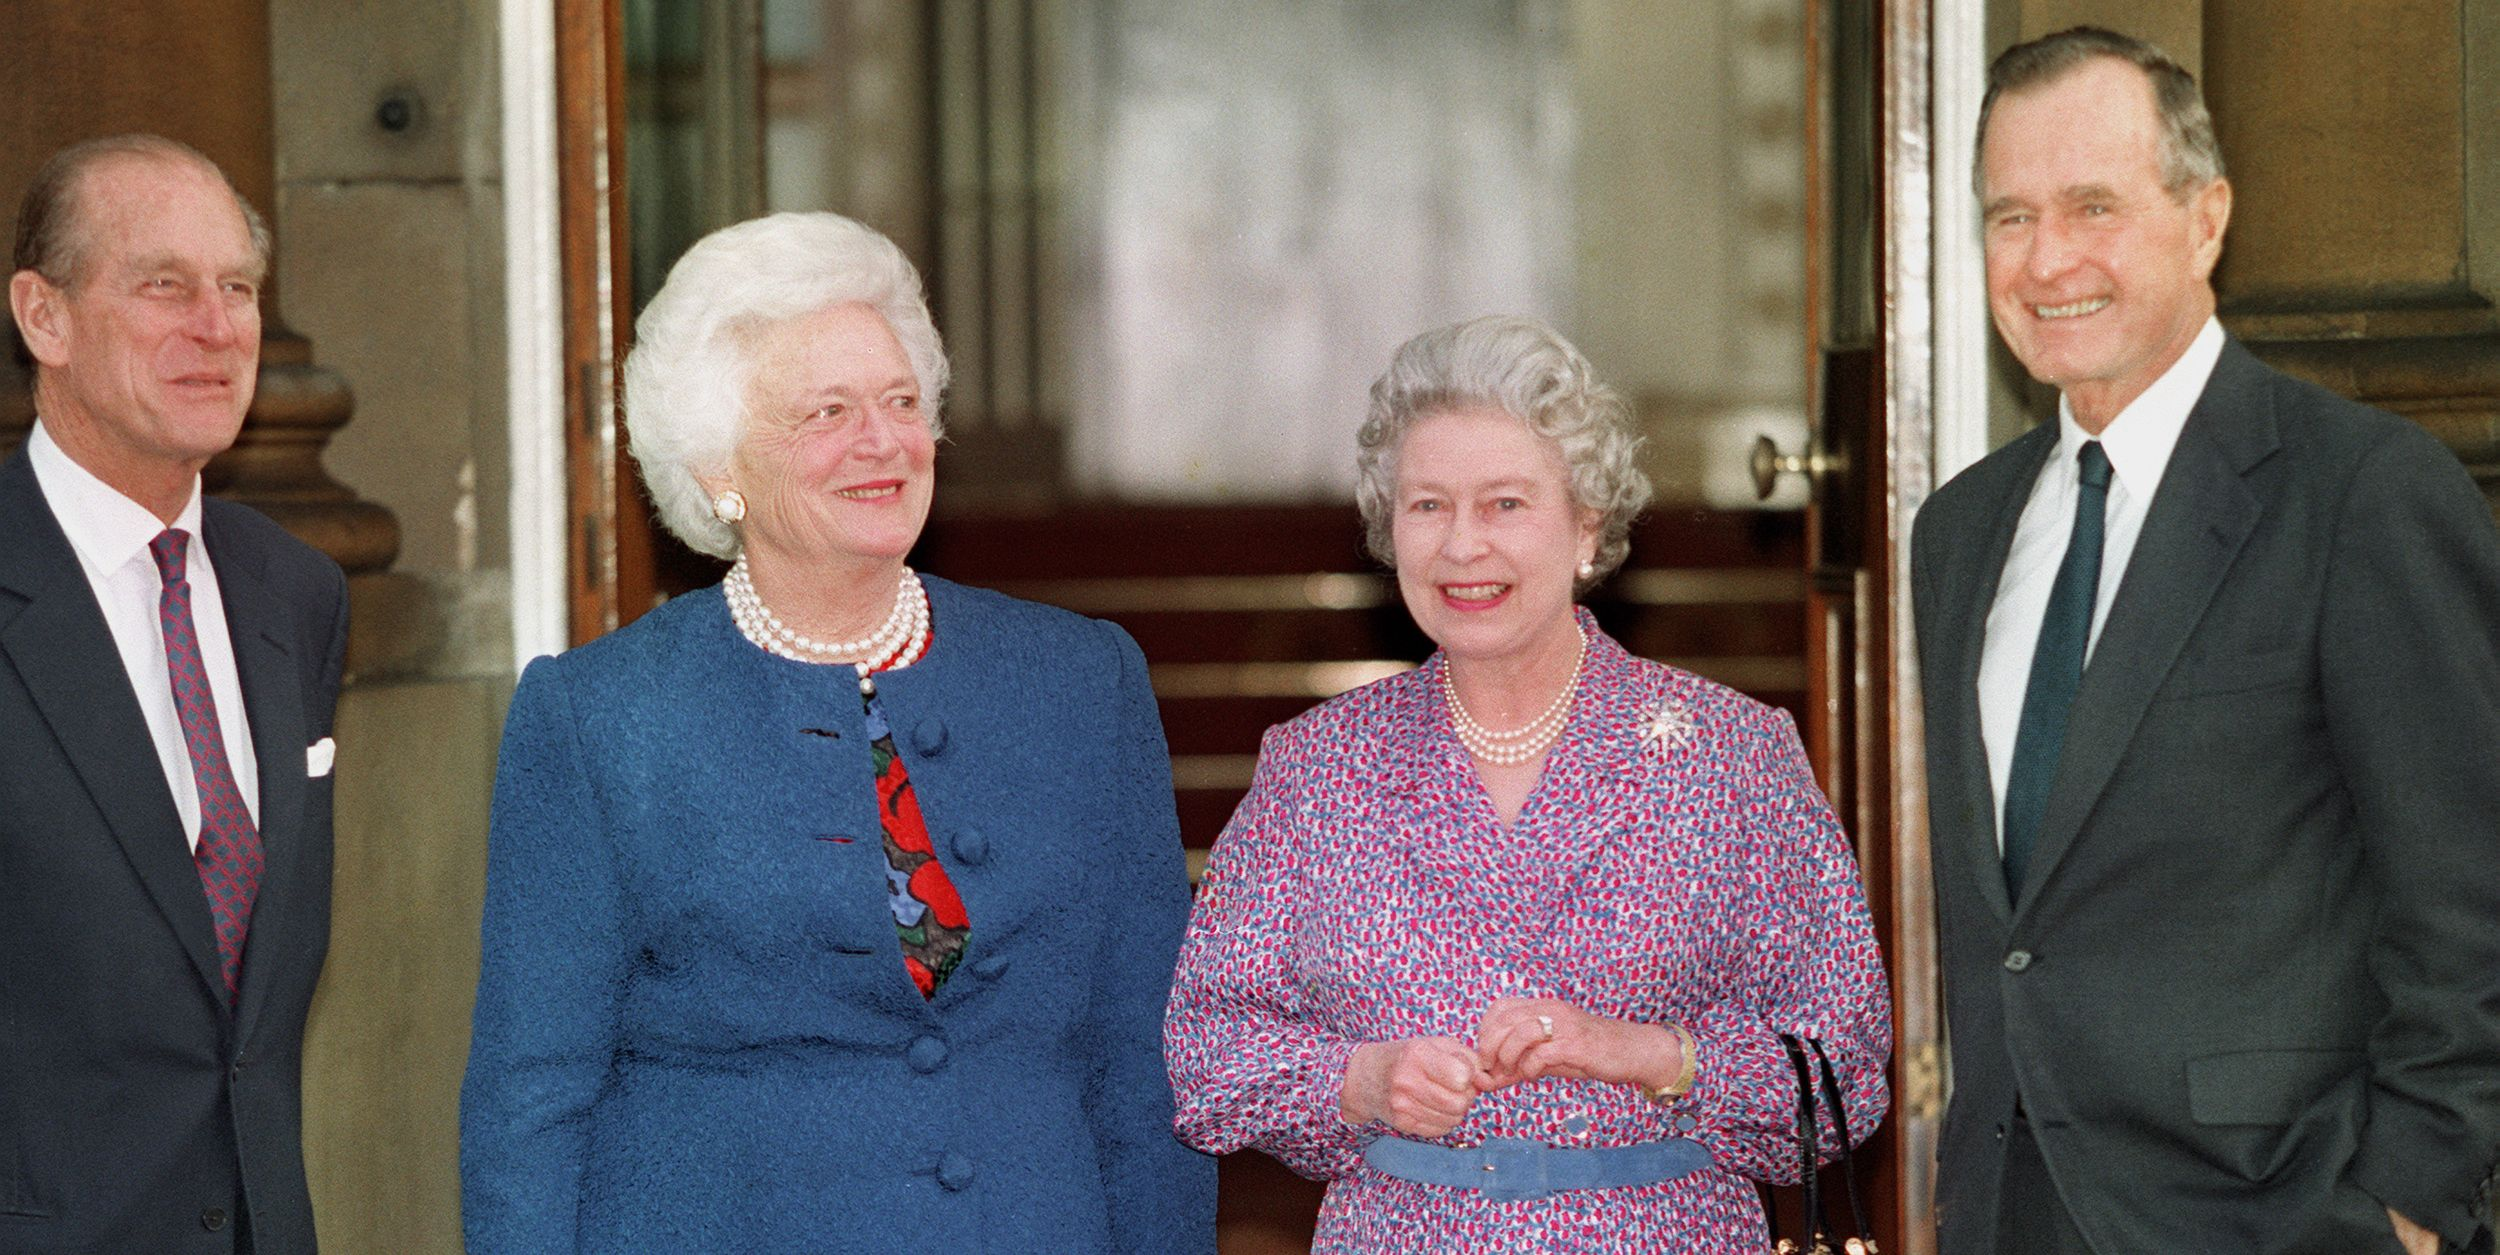 Queen Elizabeth Pays Tribute To George H W Bush In A Touching